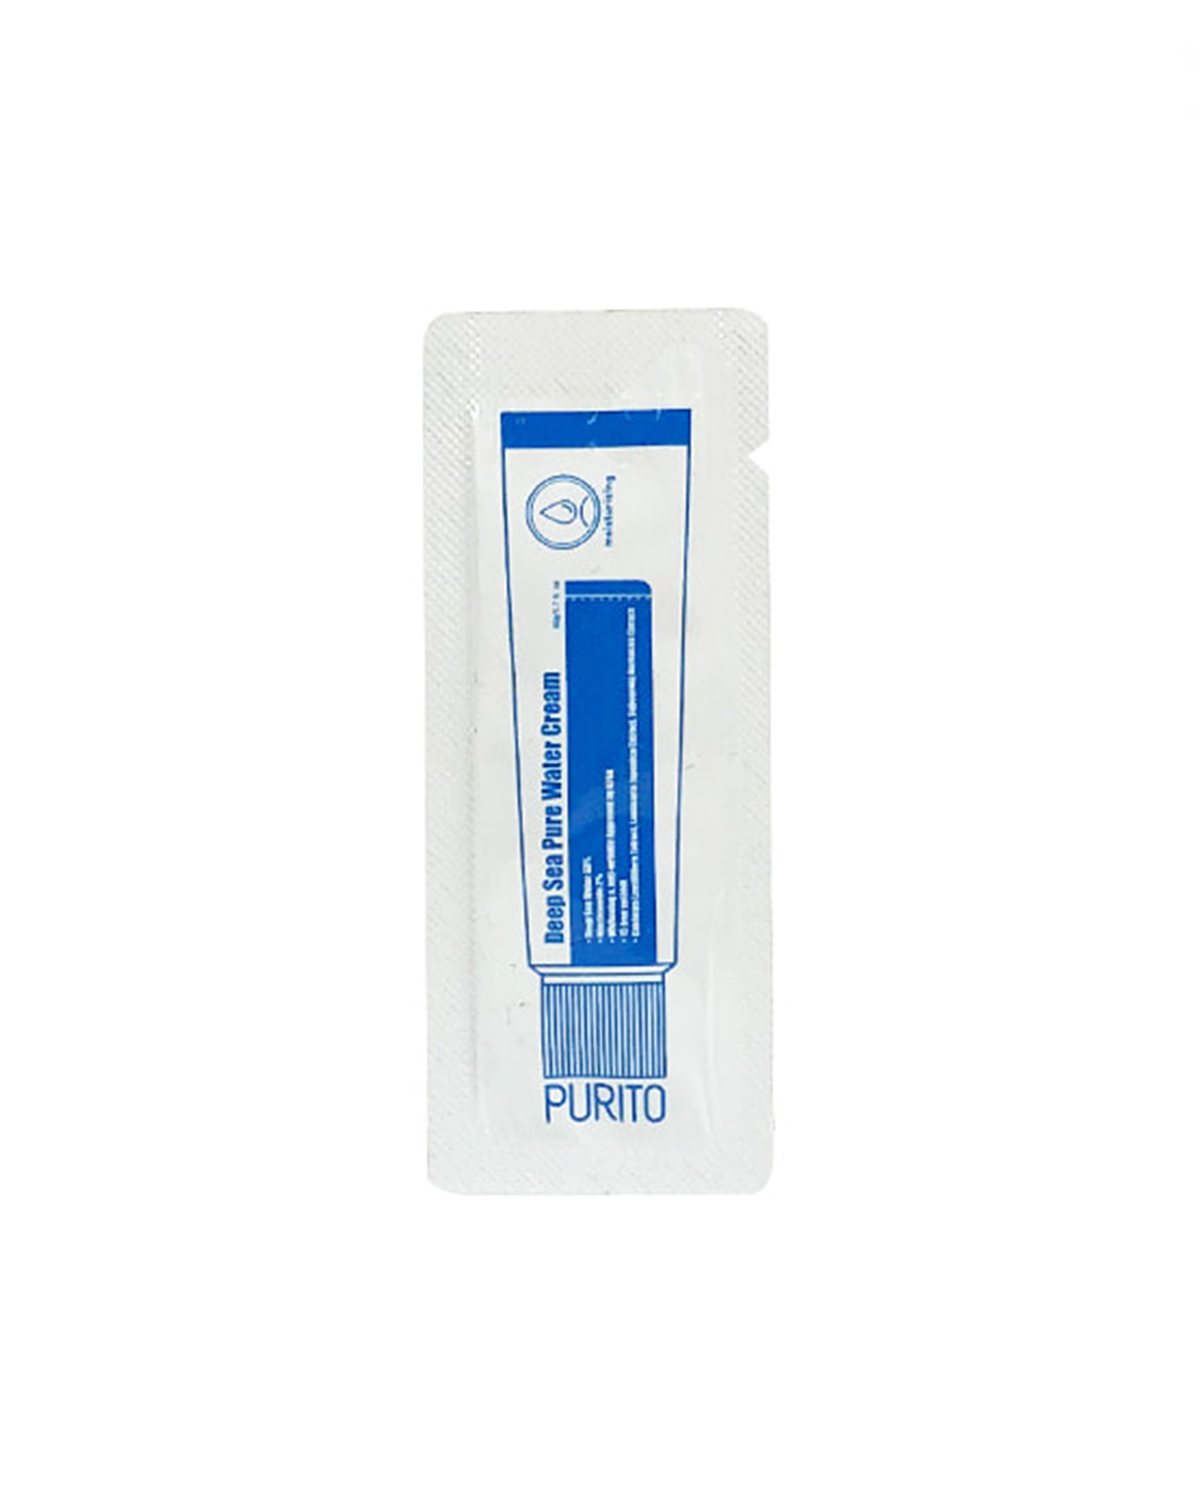 PURITO Deep Sea Pure Water Cream Sample 1g